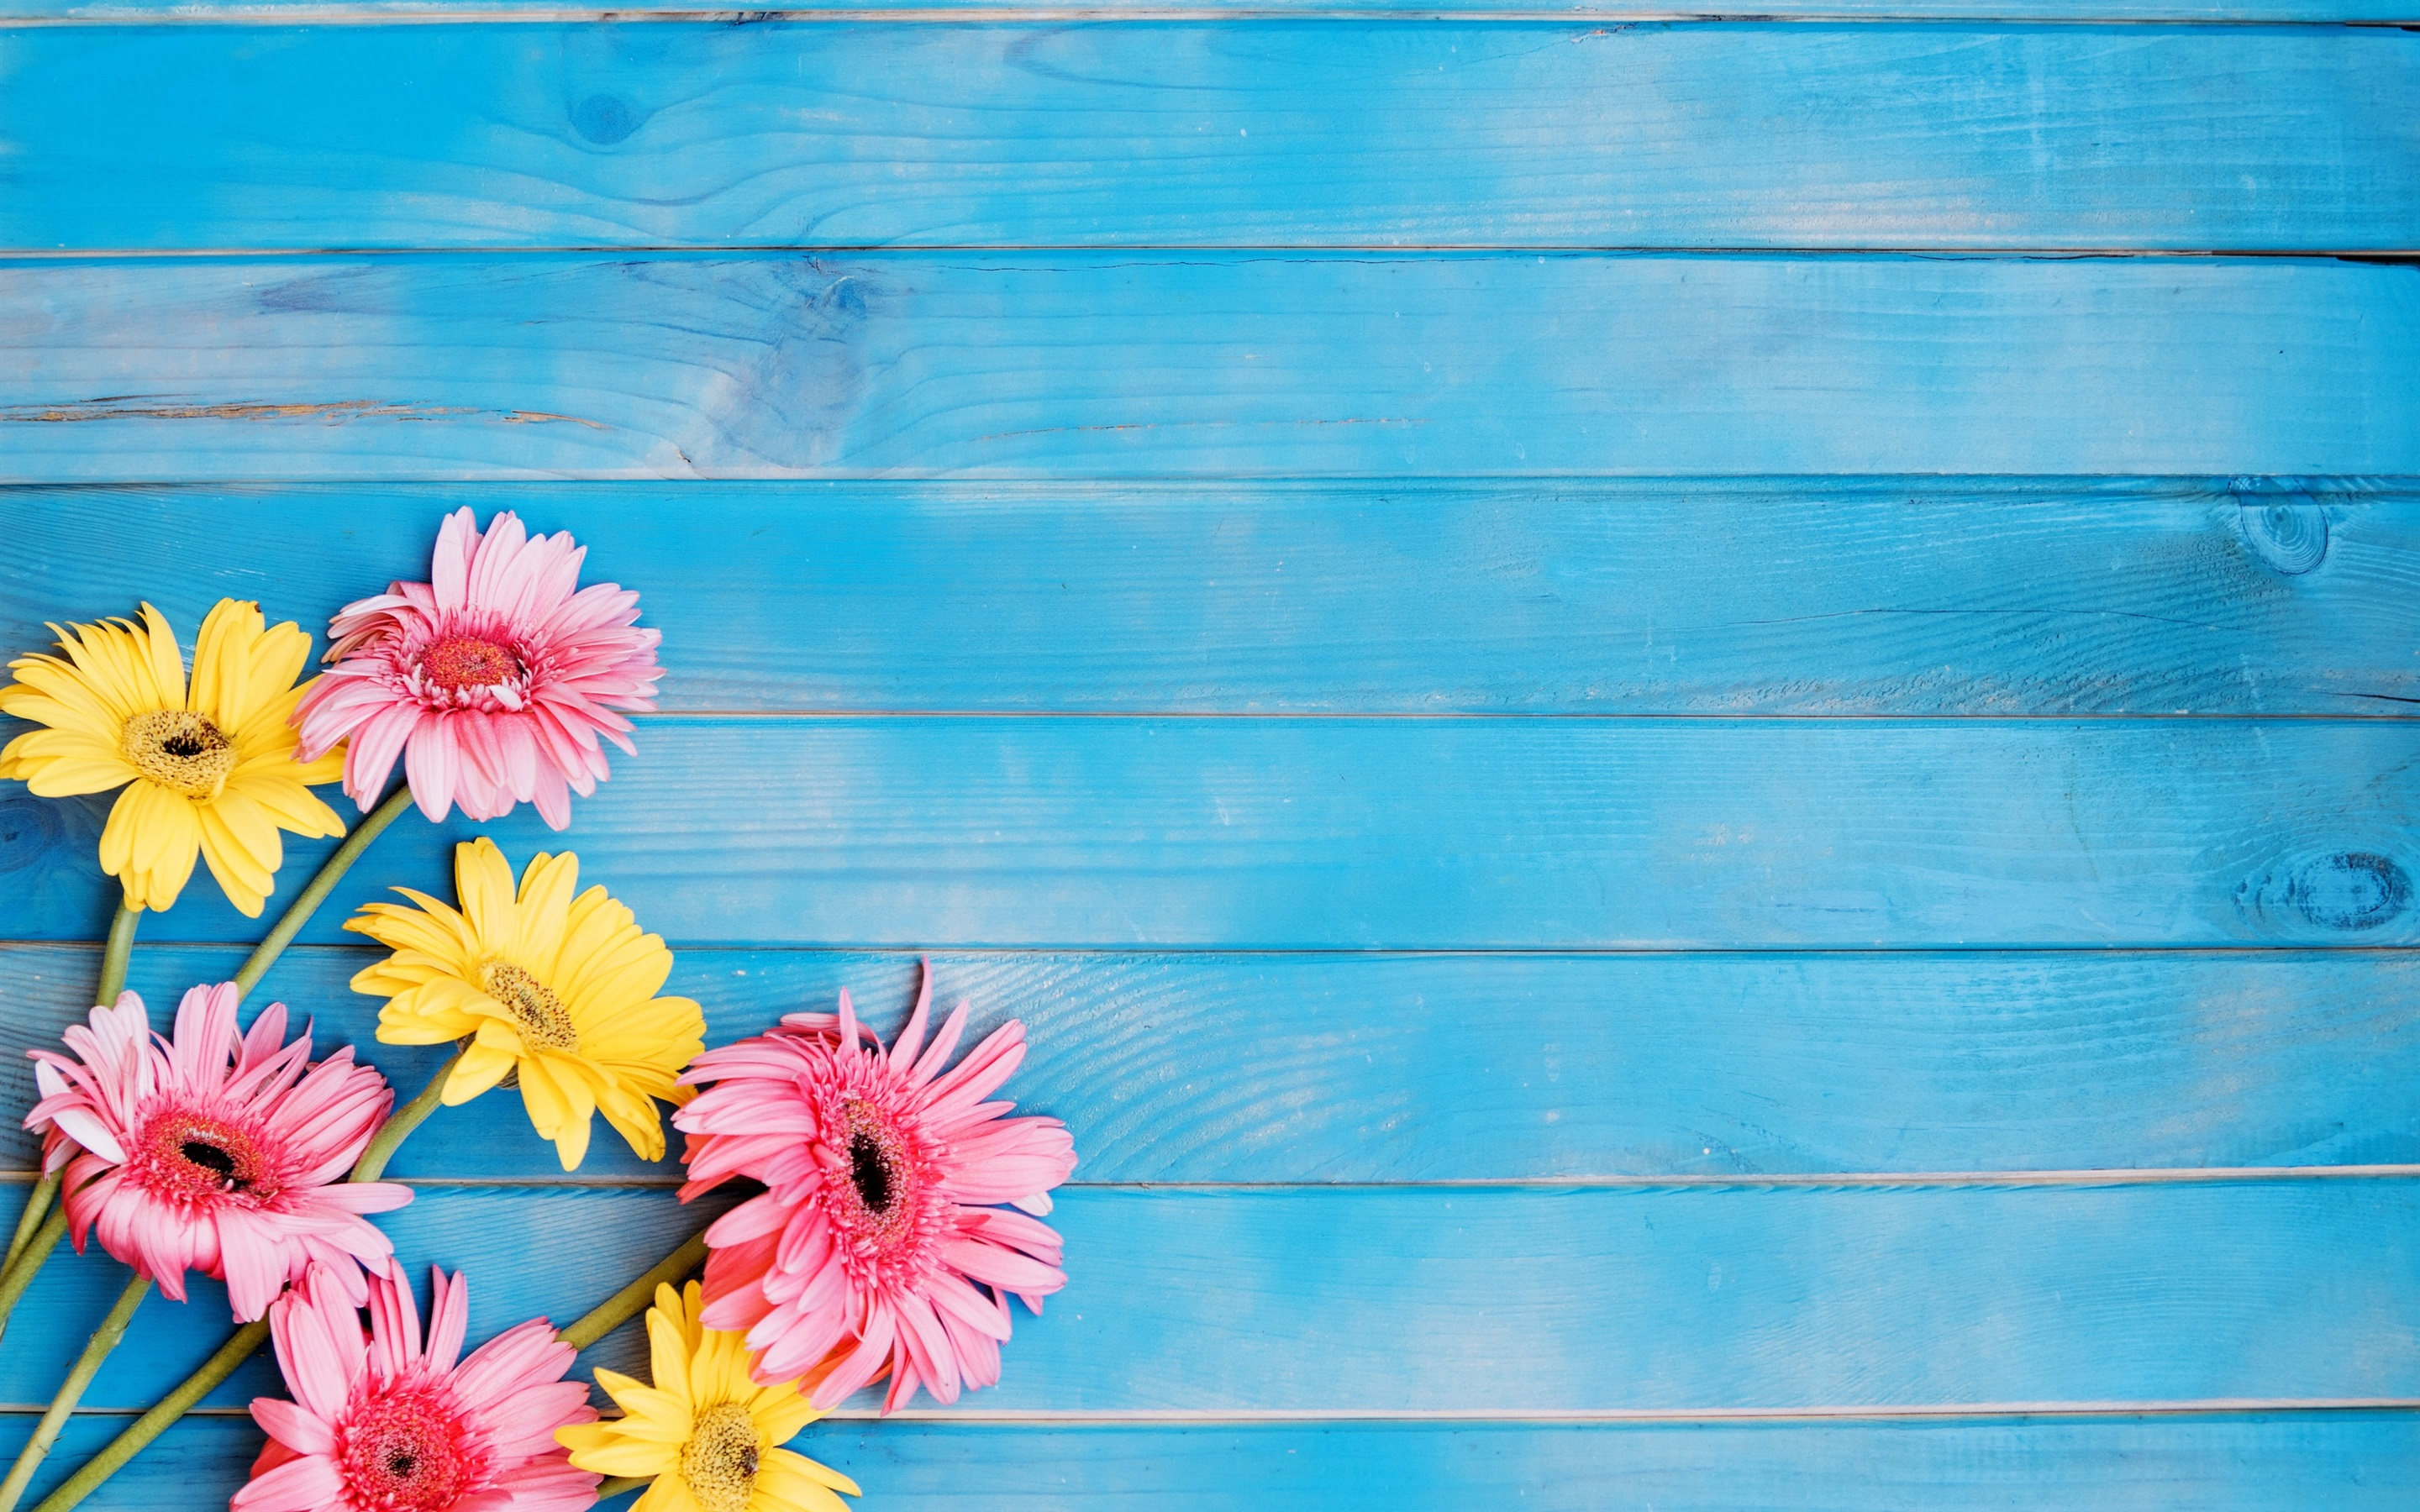 wallpaper yellow and pink gerbera flowers, blue wood board